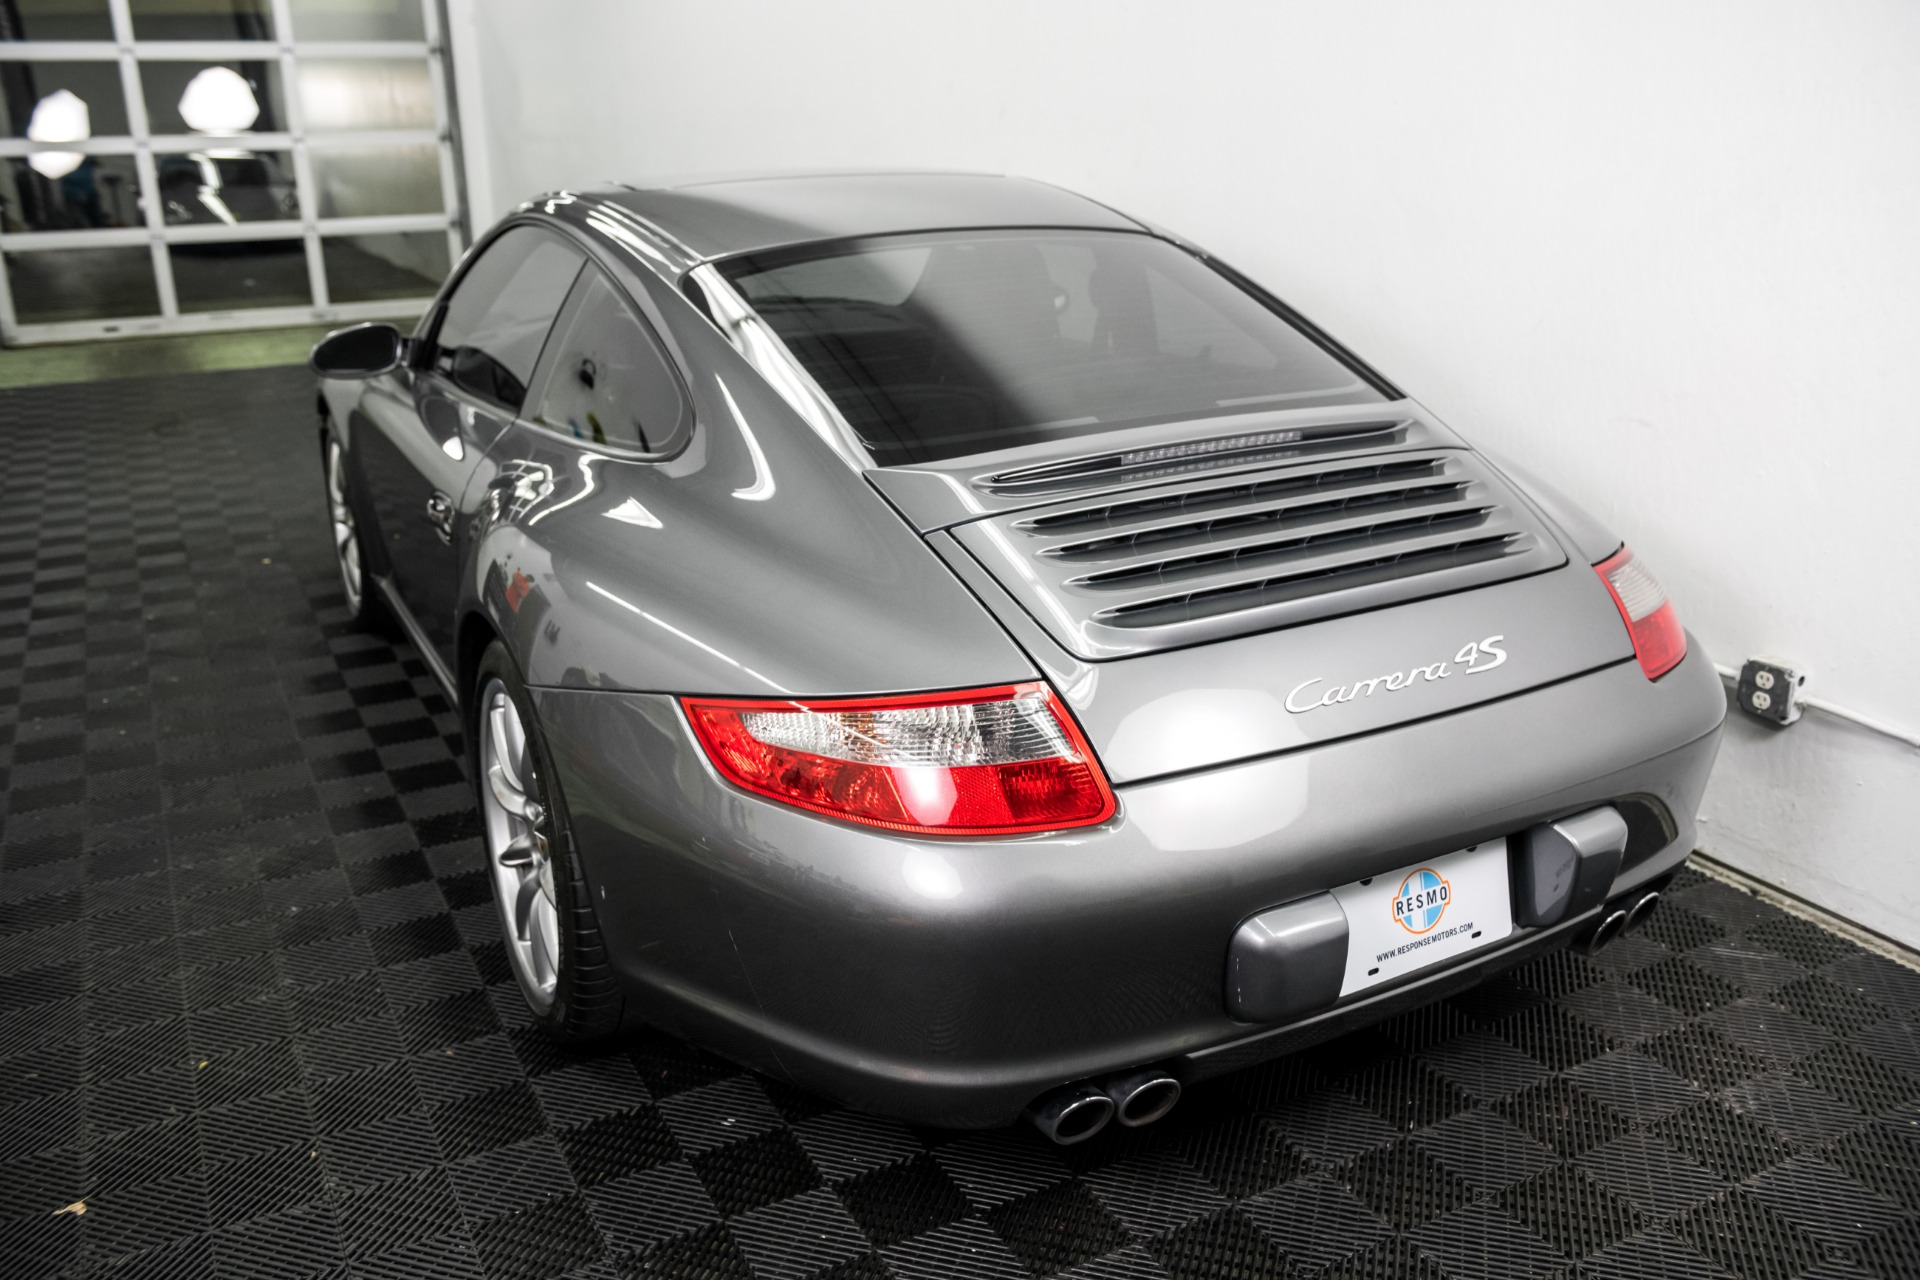 Used 2008 Porsche 911 Carrera 4S Used 2008 Porsche 911 Carrera 4S for sale $48,999 at Response Motors in Mountain View CA 7